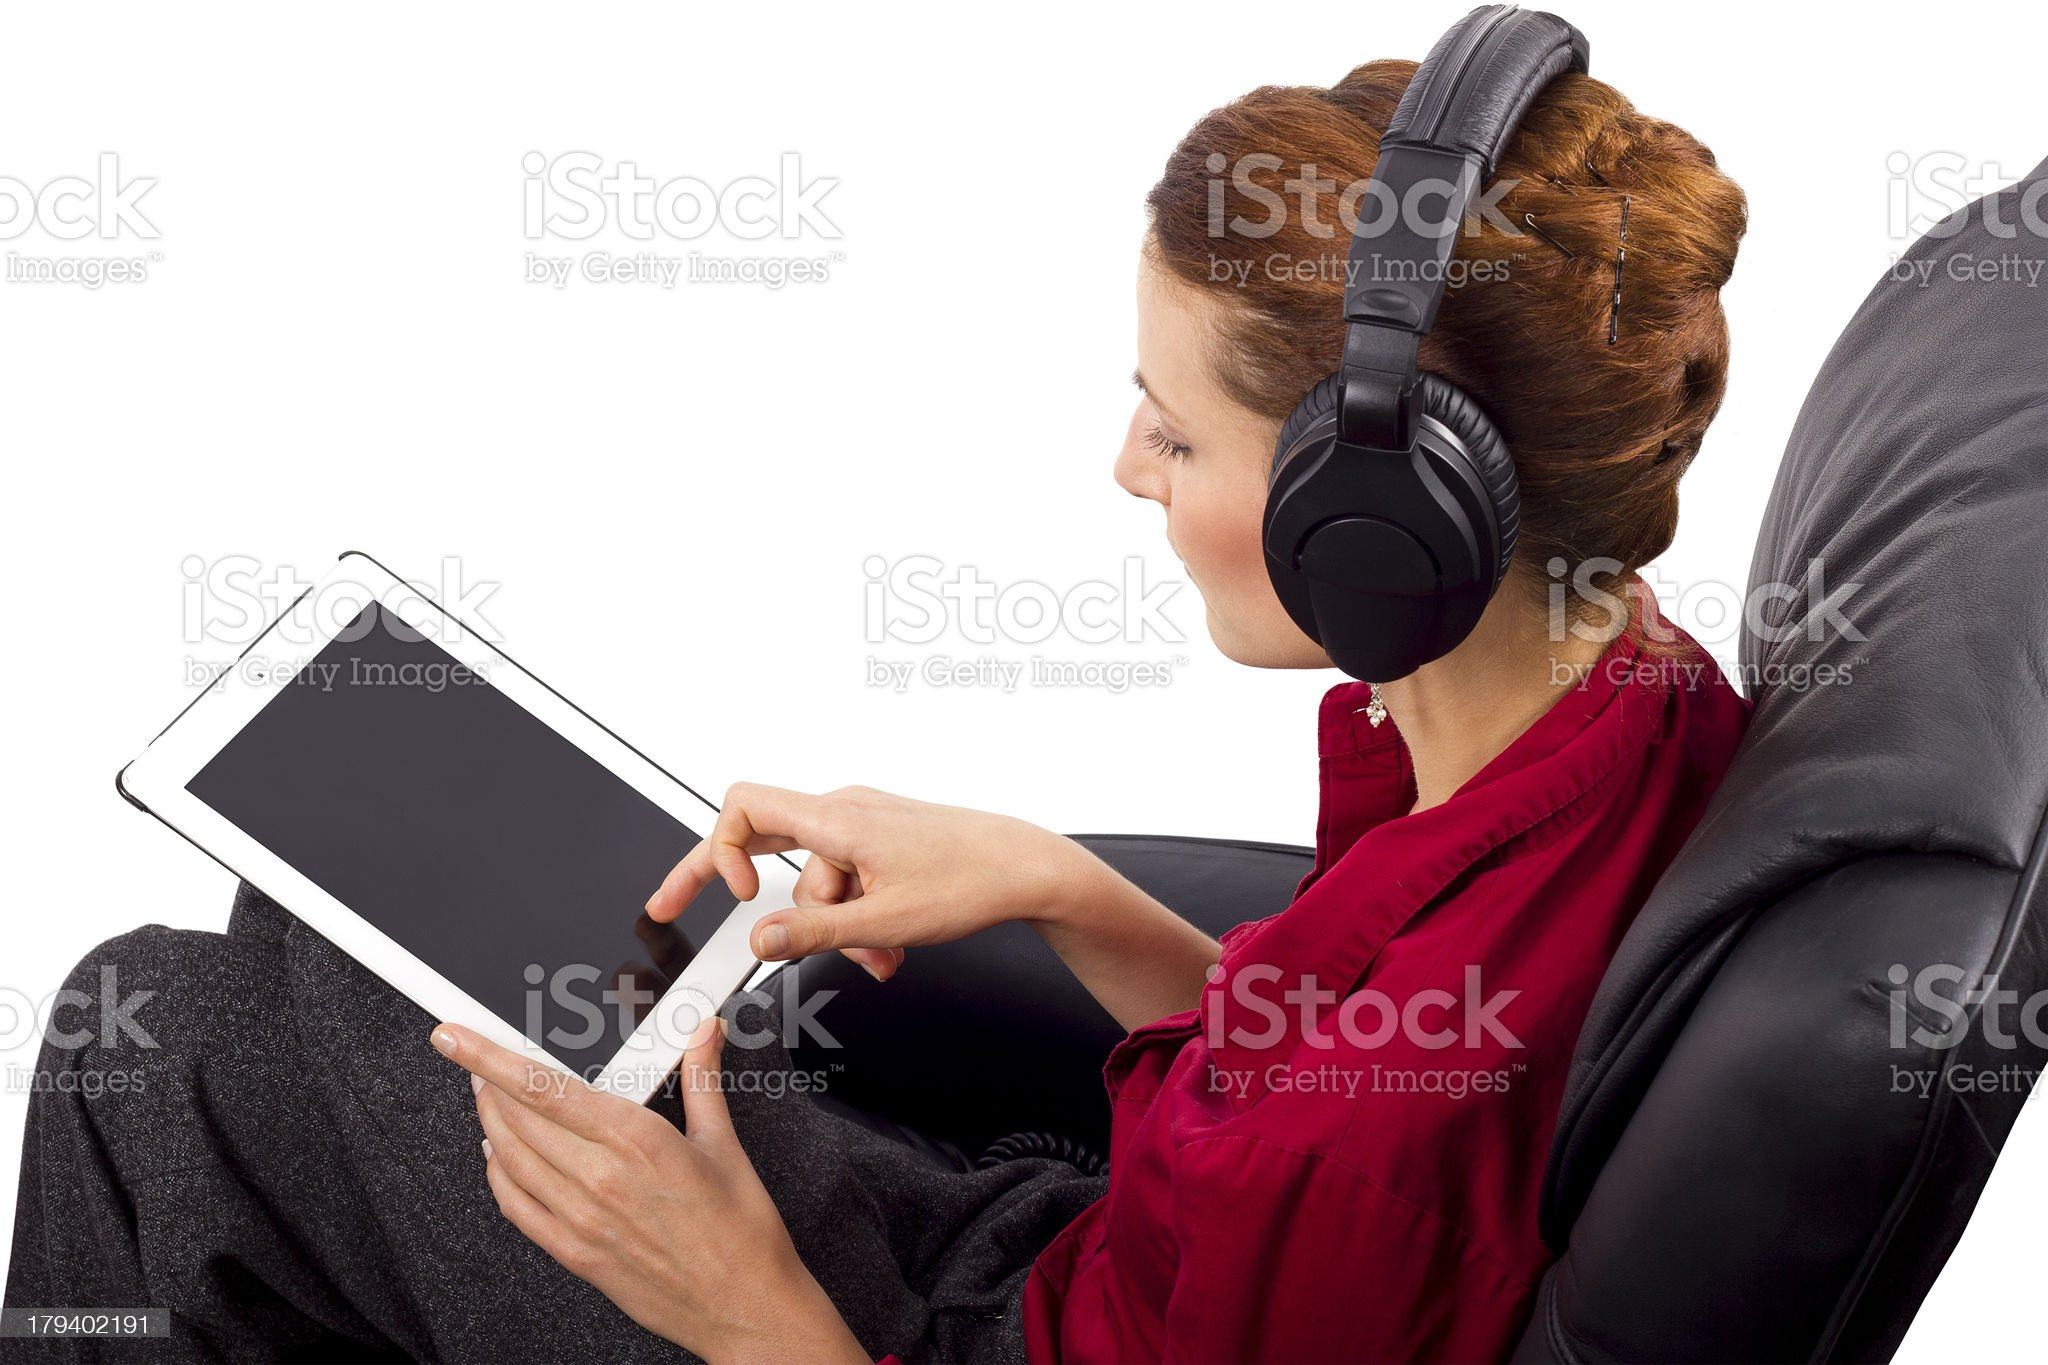 Caucasian Woman Wearing Headphones and Streaming on Mobile Device royalty-free stock photo